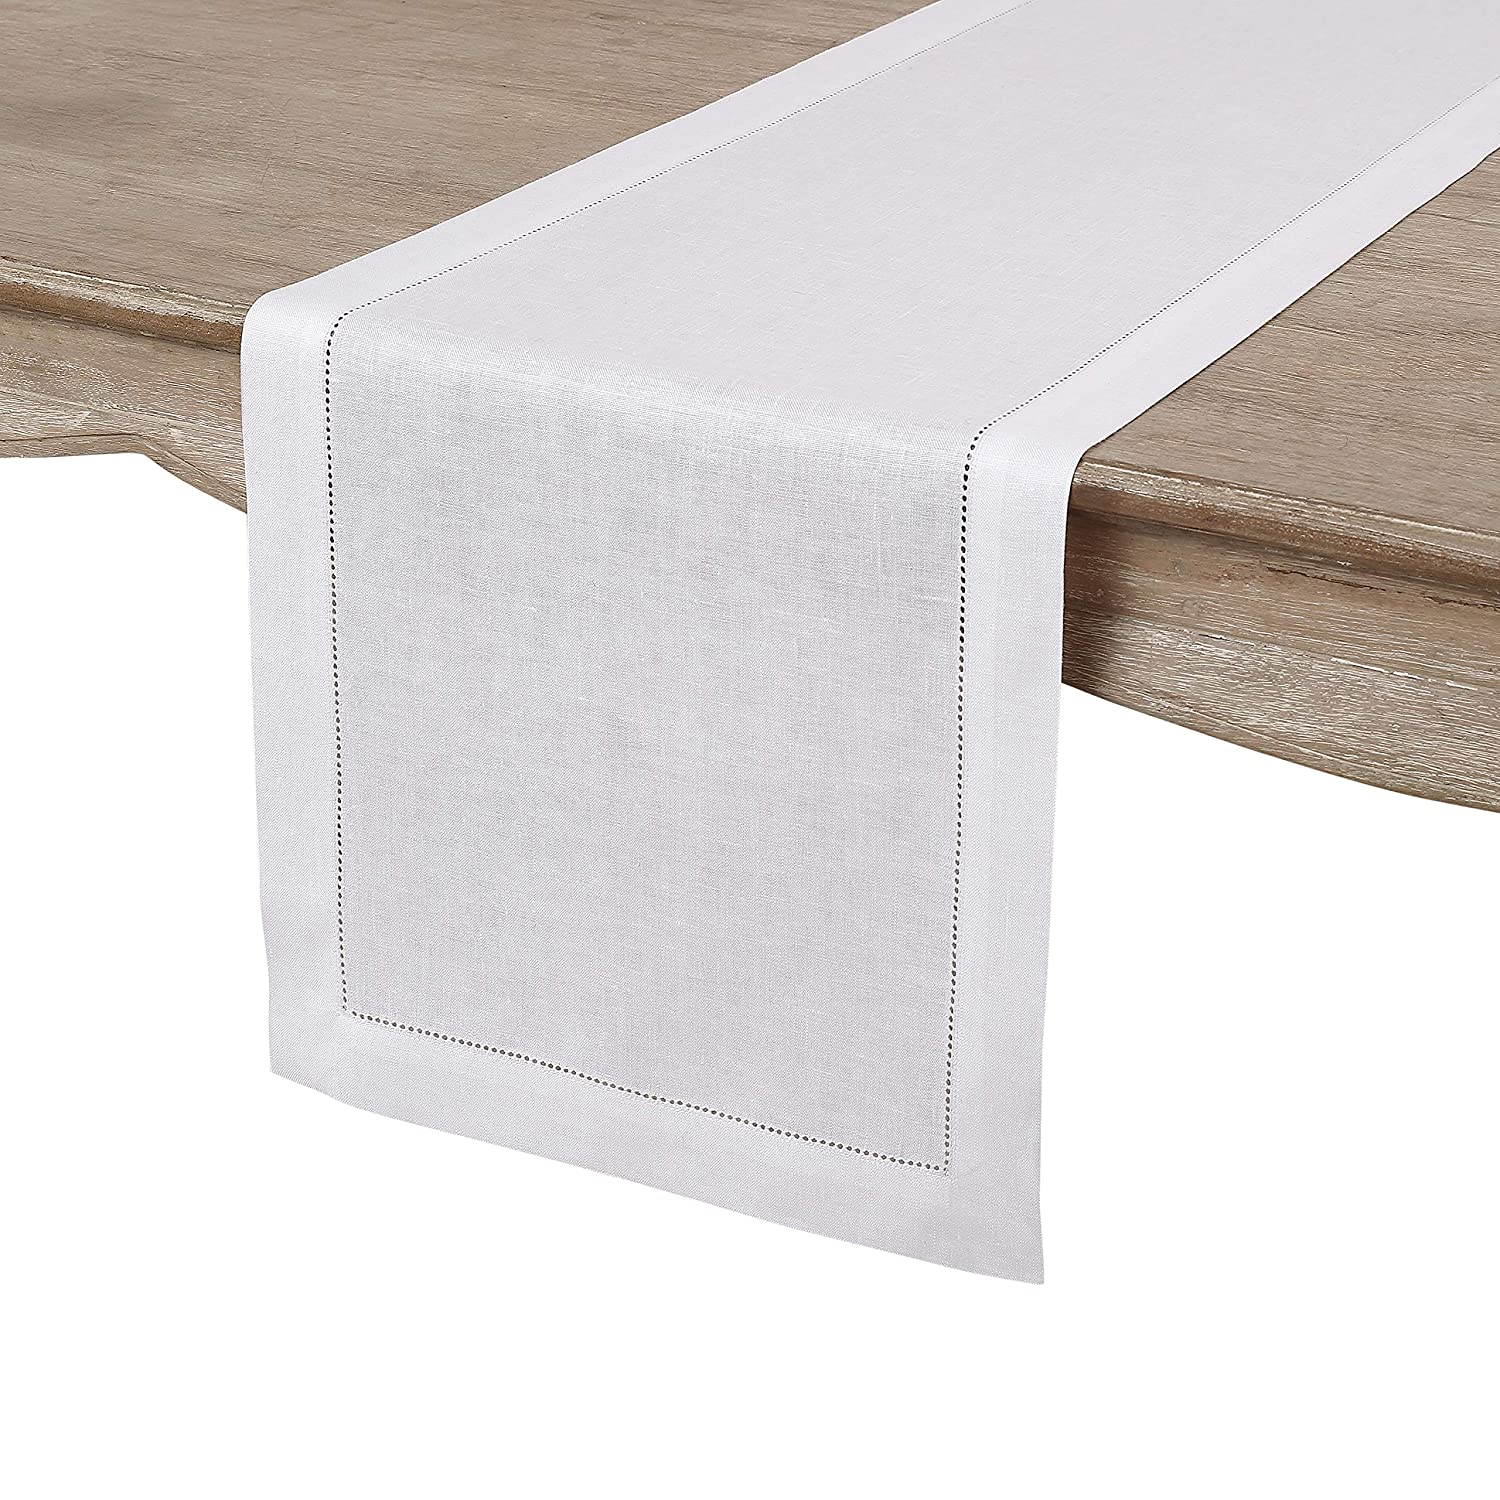 Solino Home Hemstitch Linen Table Runner - 14 x 90 Inch, Handcrafted from European Flax, Machine Washable Classic Hemstitch - White